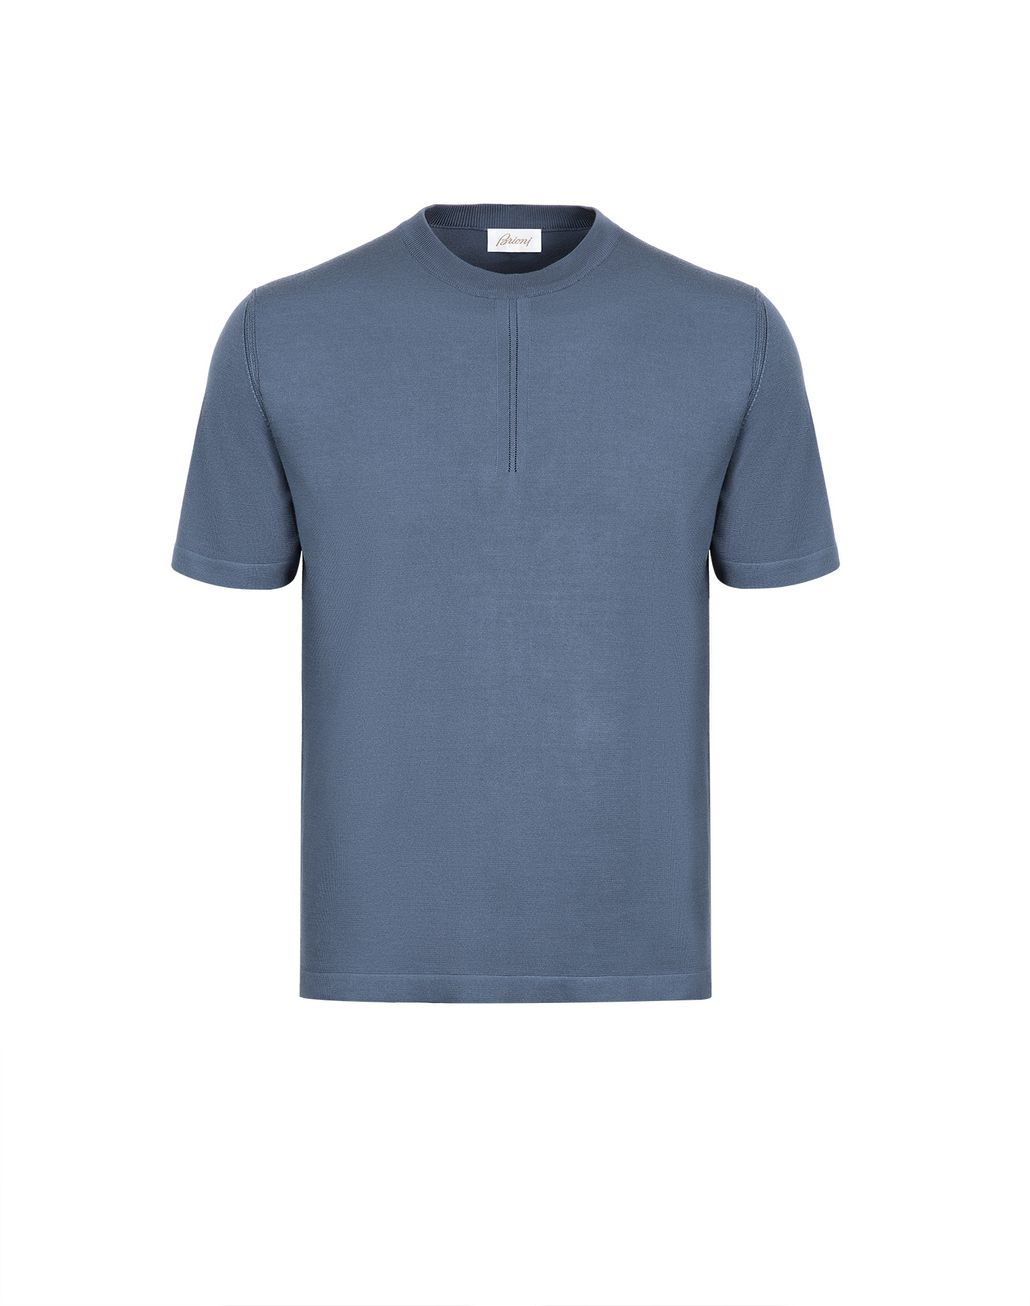 BRIONI Navy Blue Silk Polo Shirt with Front Details T-Shirts & Polos Man f